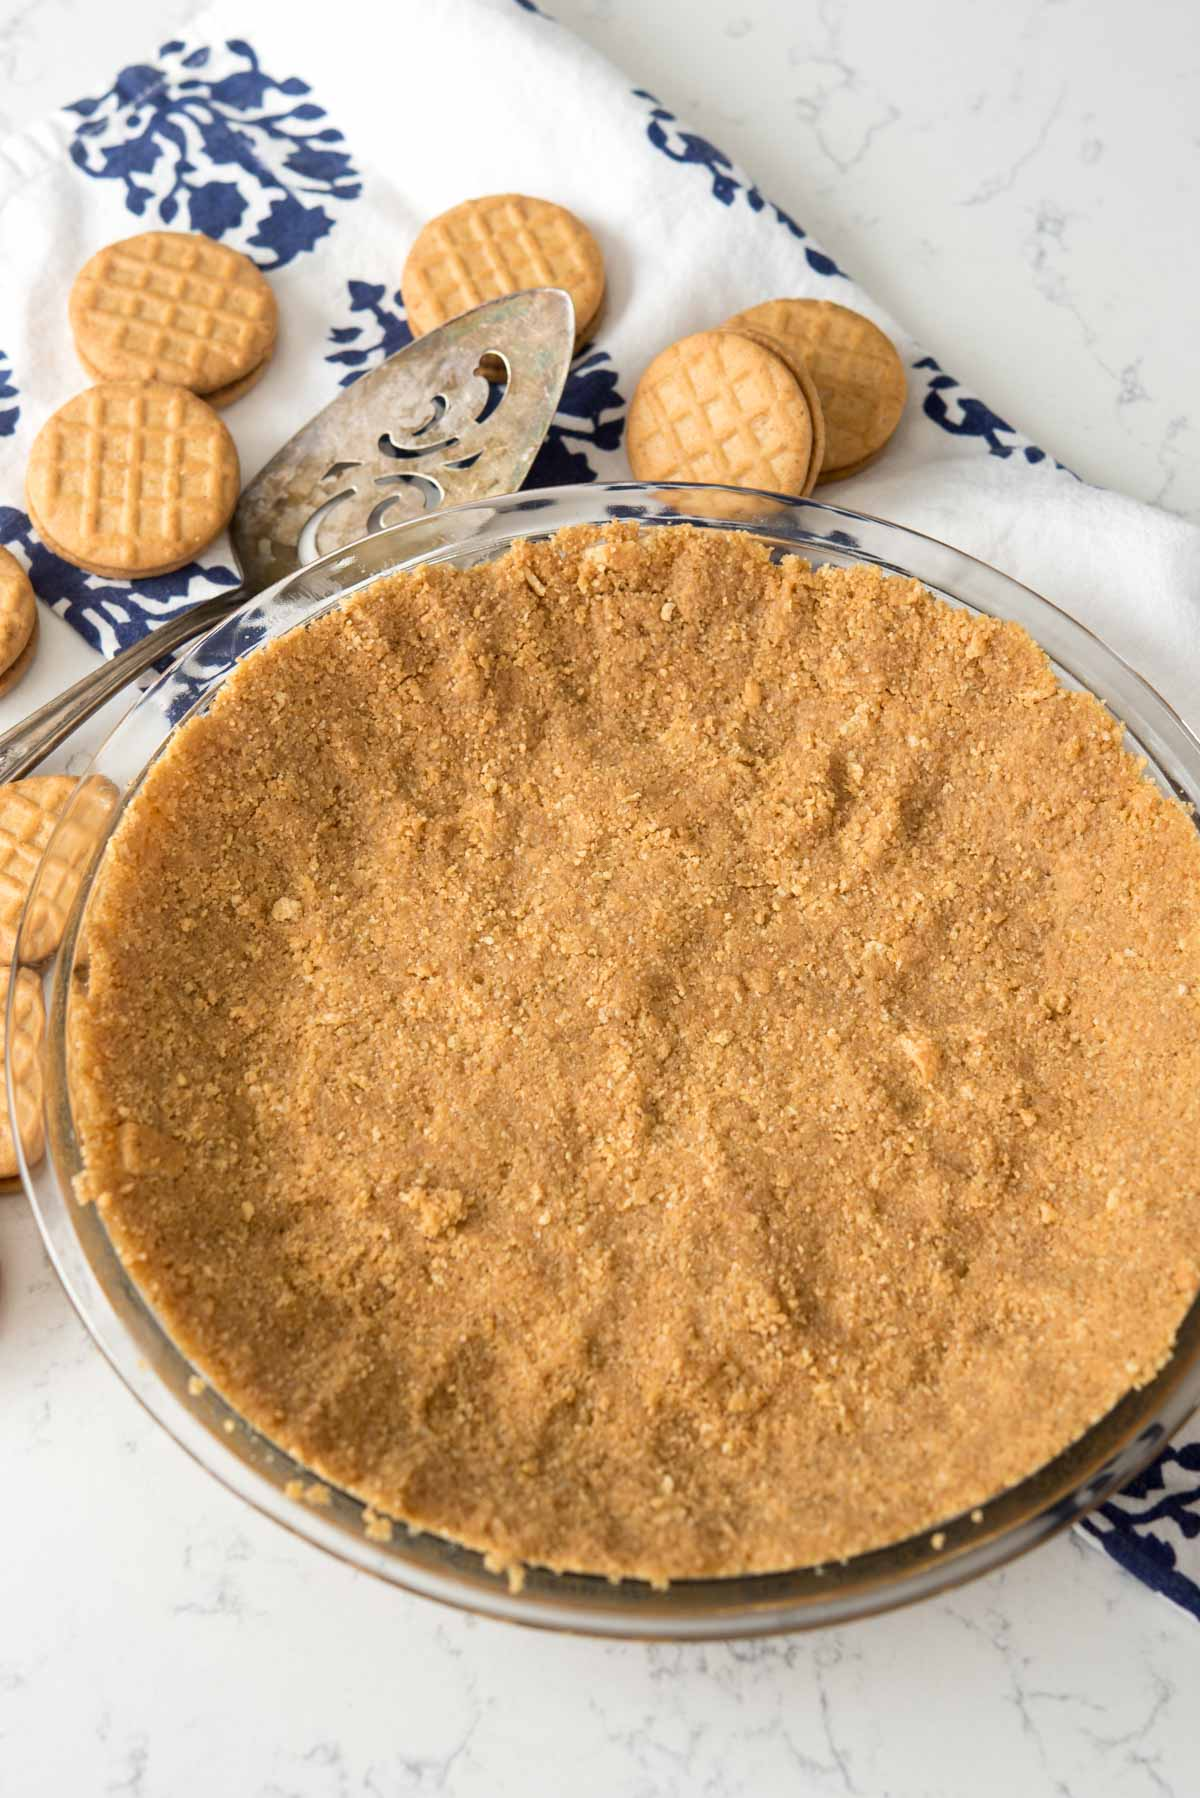 Easy No-Bake Peanut Butter Cookie Crust - this crust recipe is PERFECT for any no-bake pie!